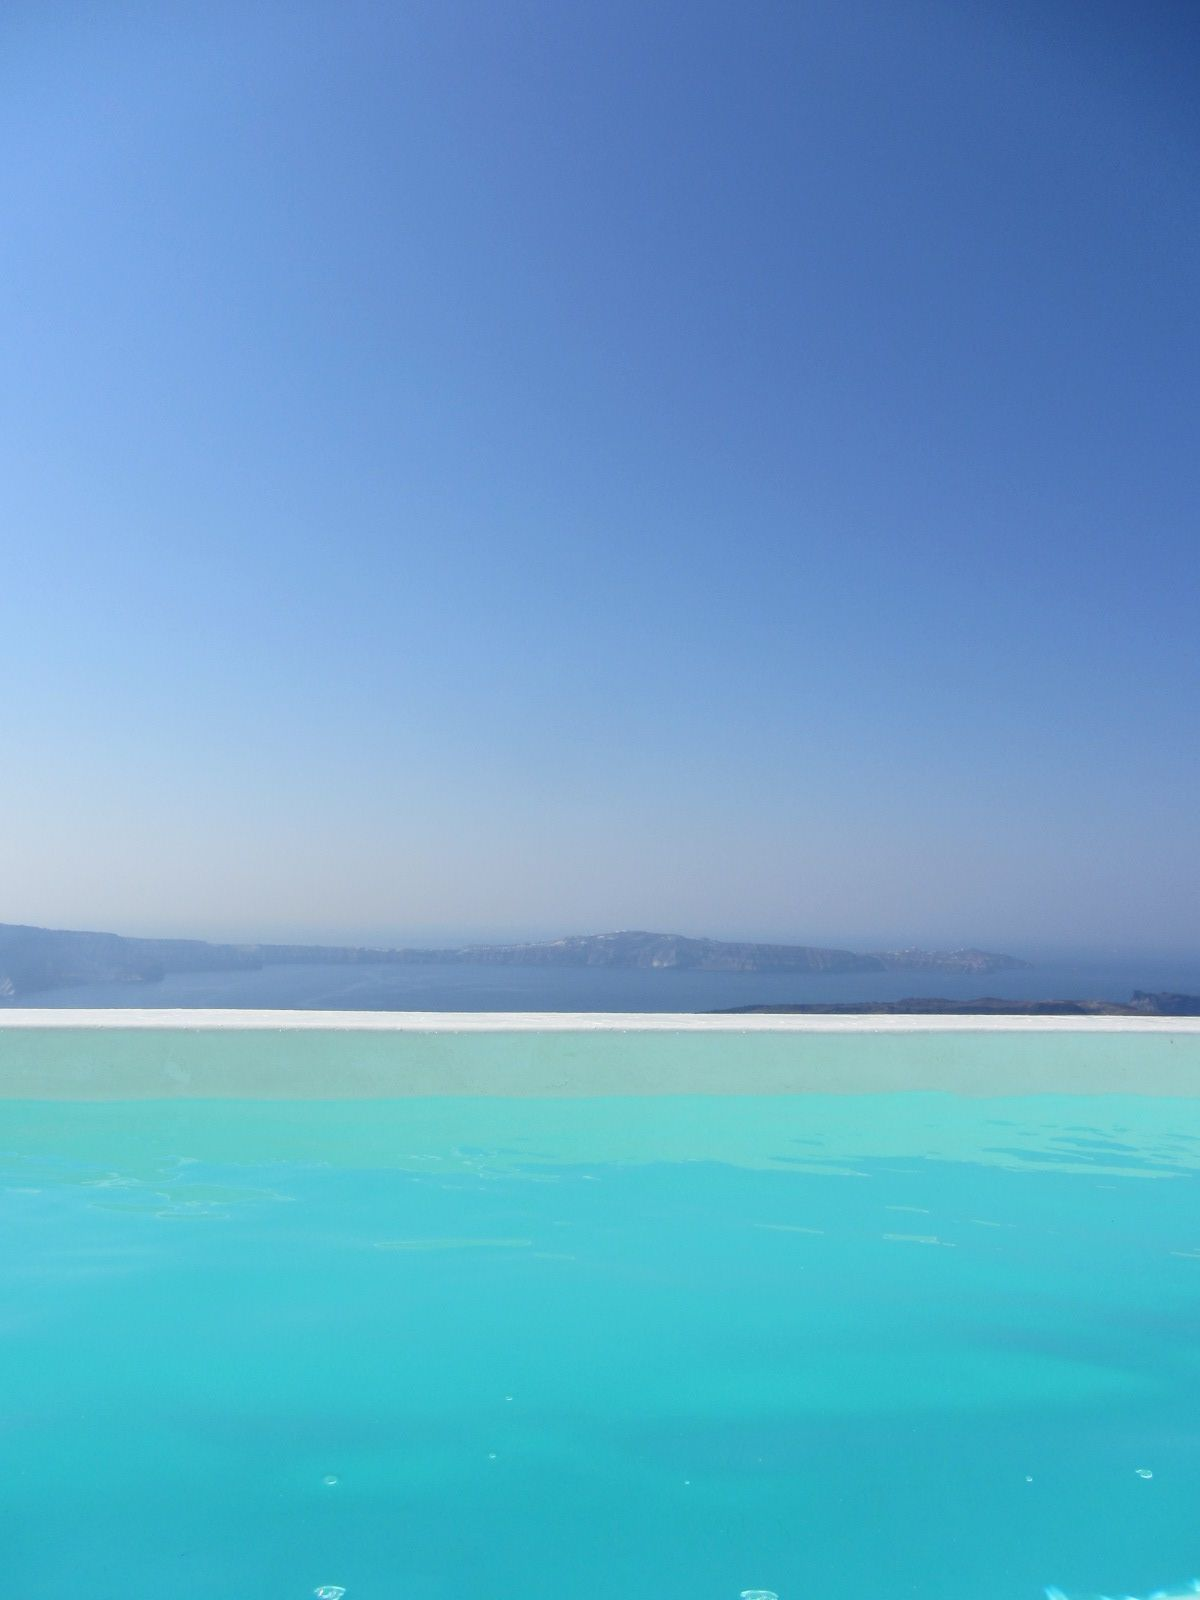 infinity pool santorini Places I Want to Go Infinity edge 1200x1600